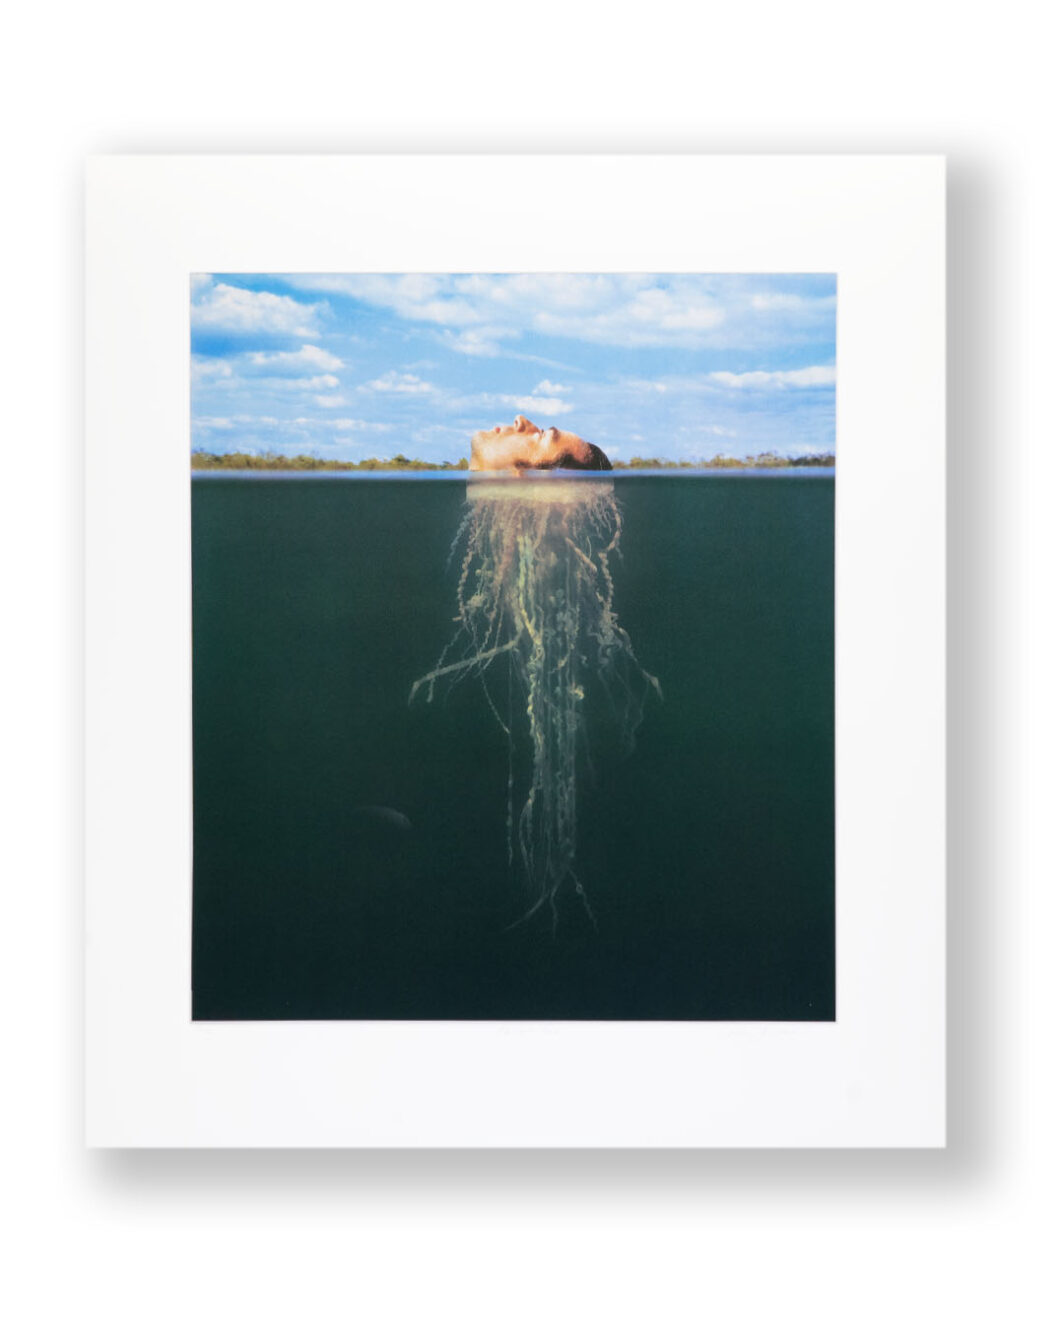 JELLYFISH PRINT BY STORM THORGERSON